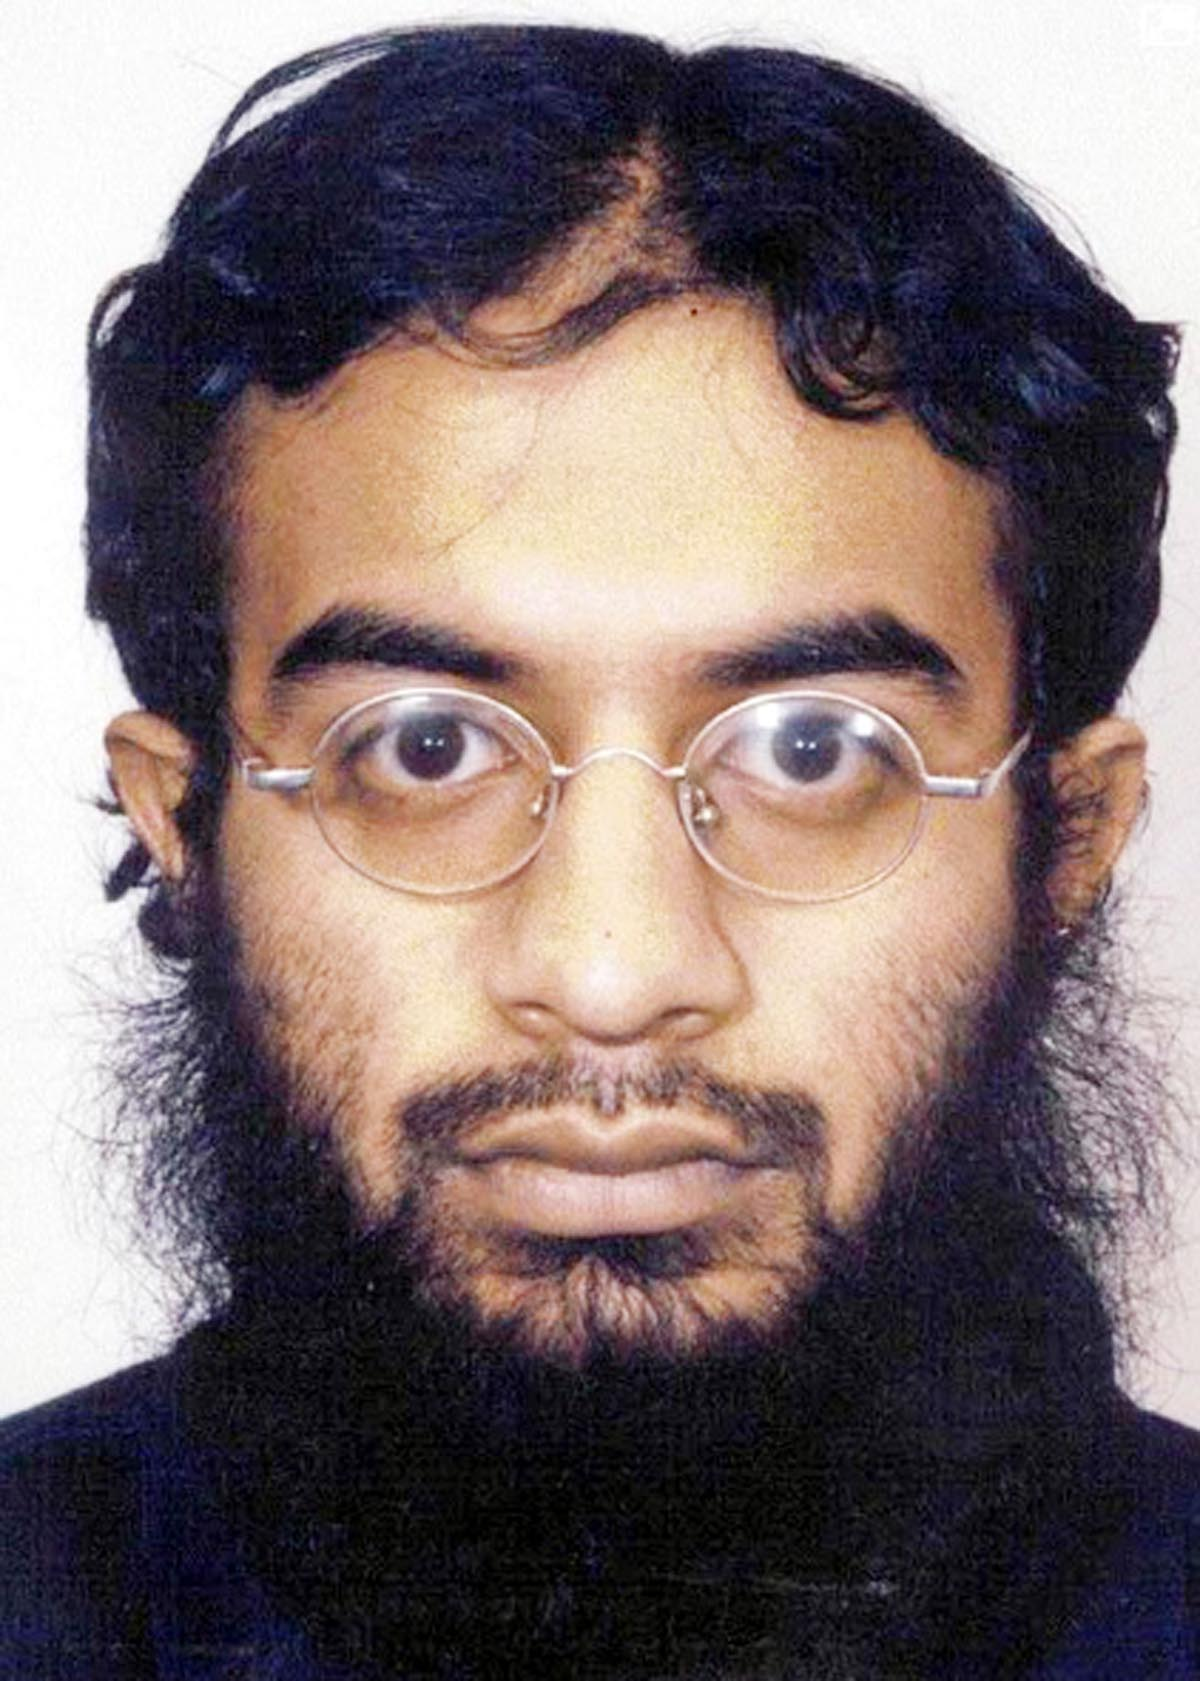 Terrorist turned informer Saajid Badat will give evidence at two trials in the United States